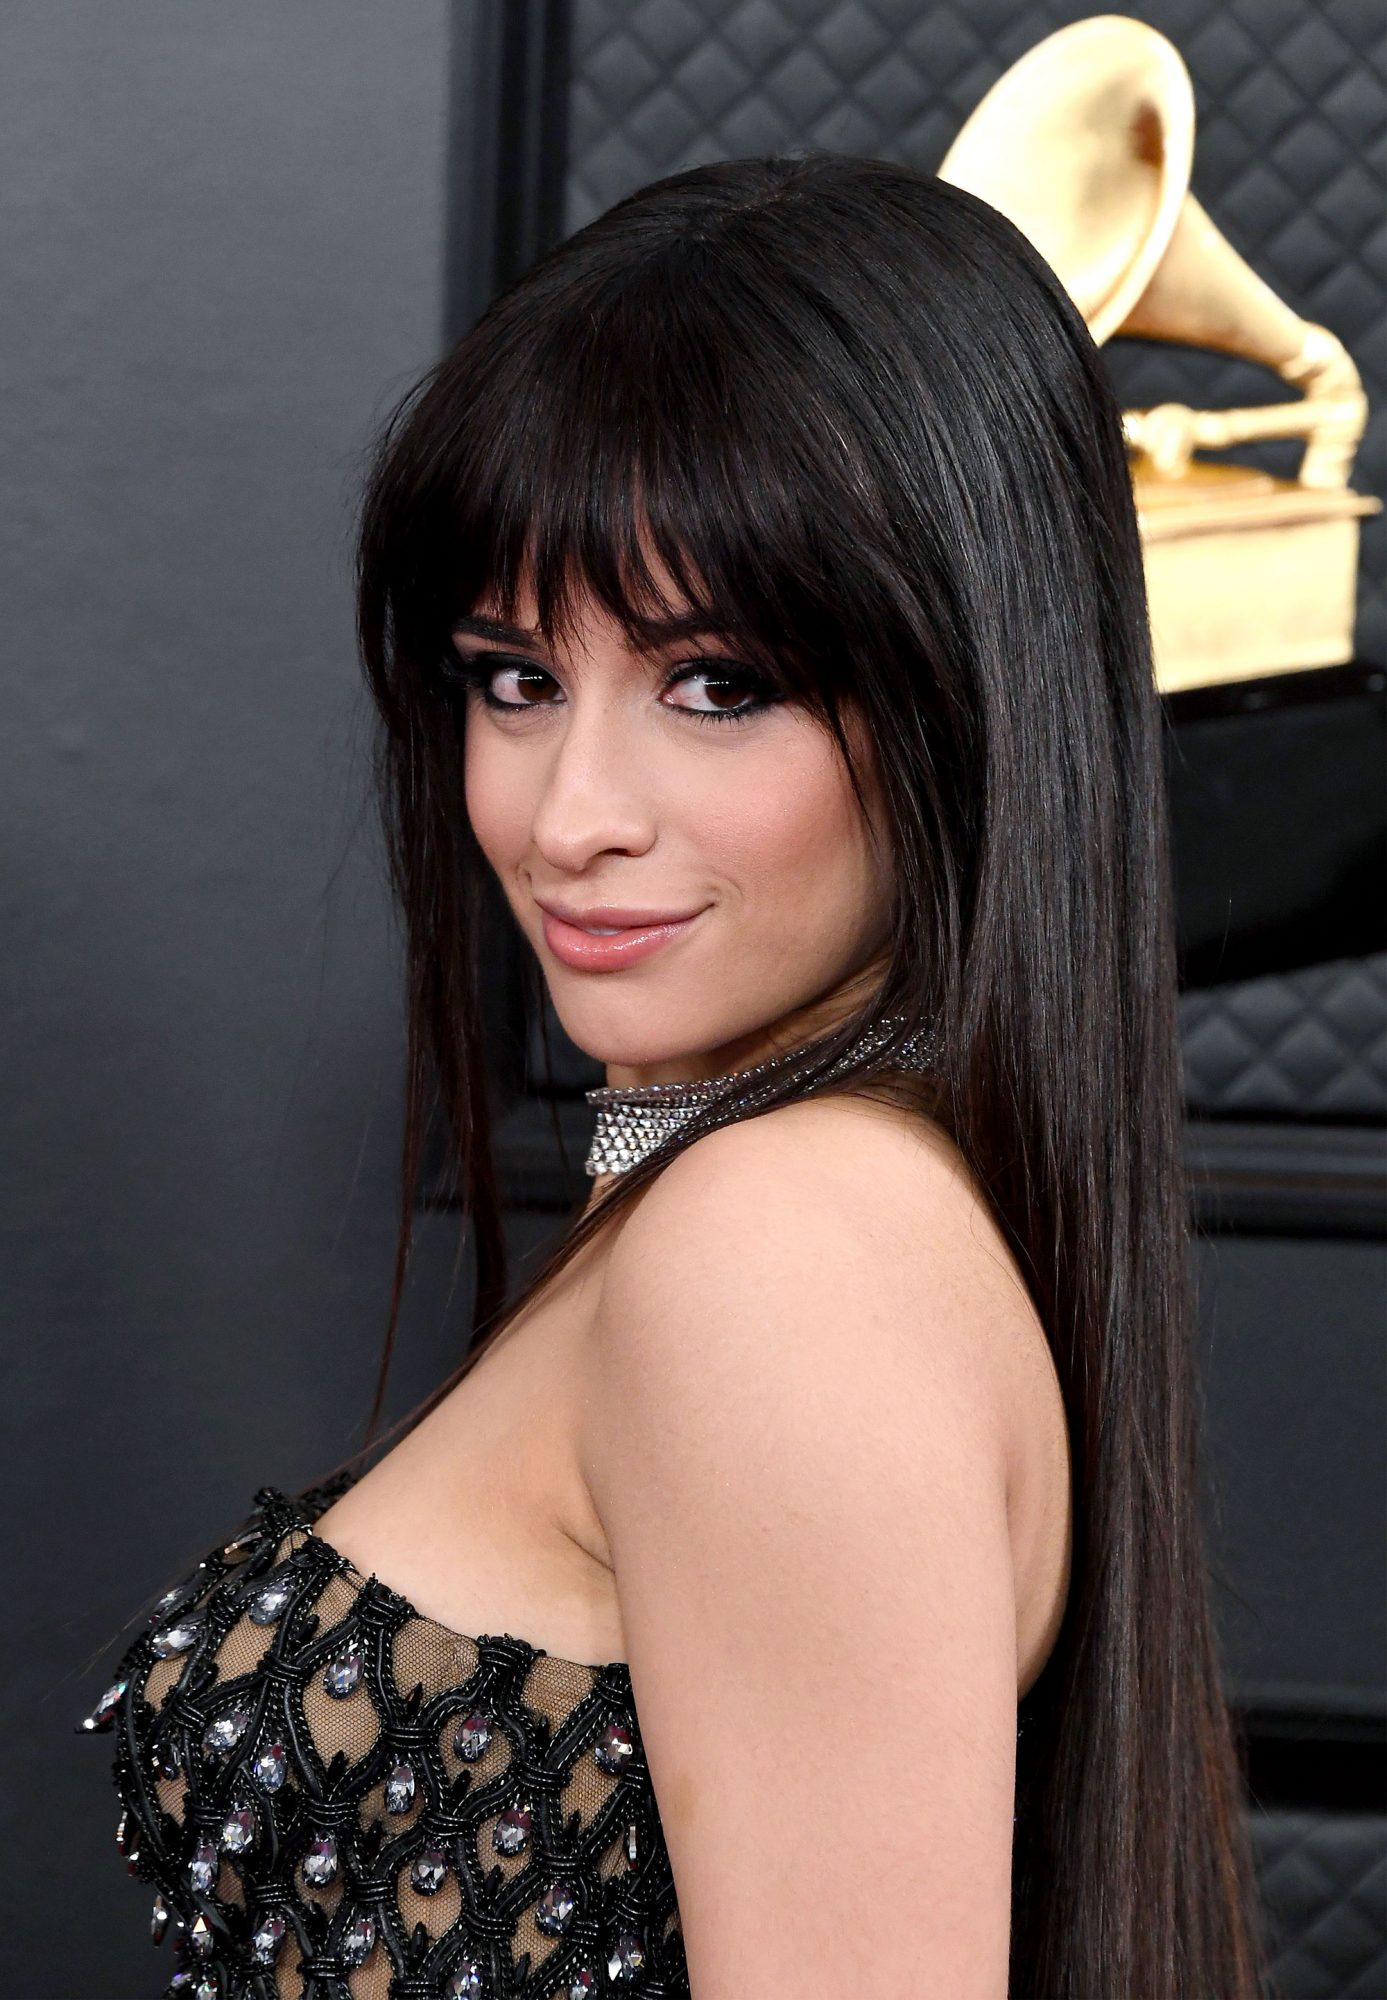 How to Trim Your Bangs - Camila Cabello